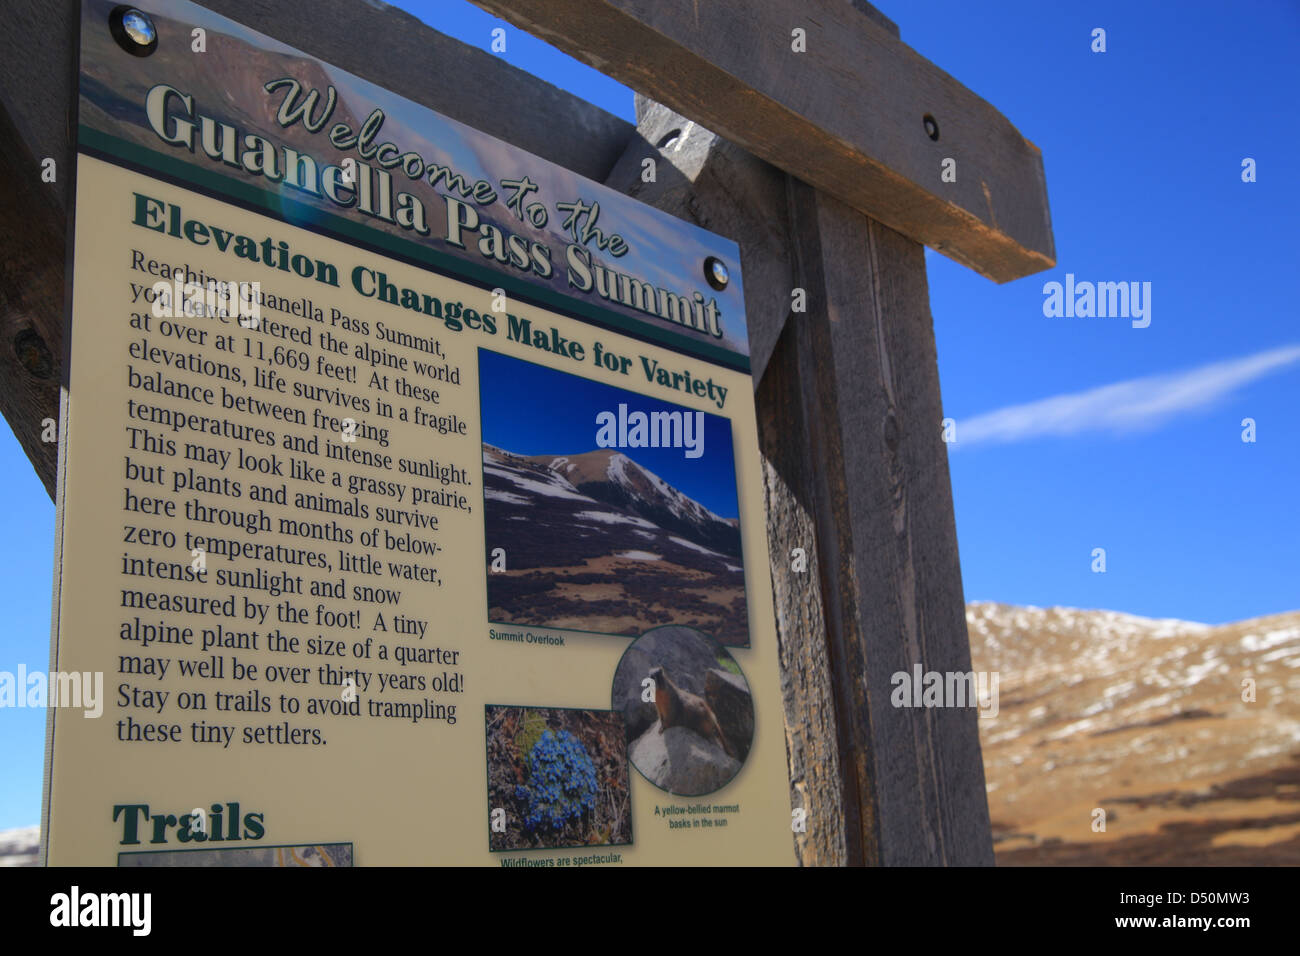 Guanella Pass in Summit County - Stock Image